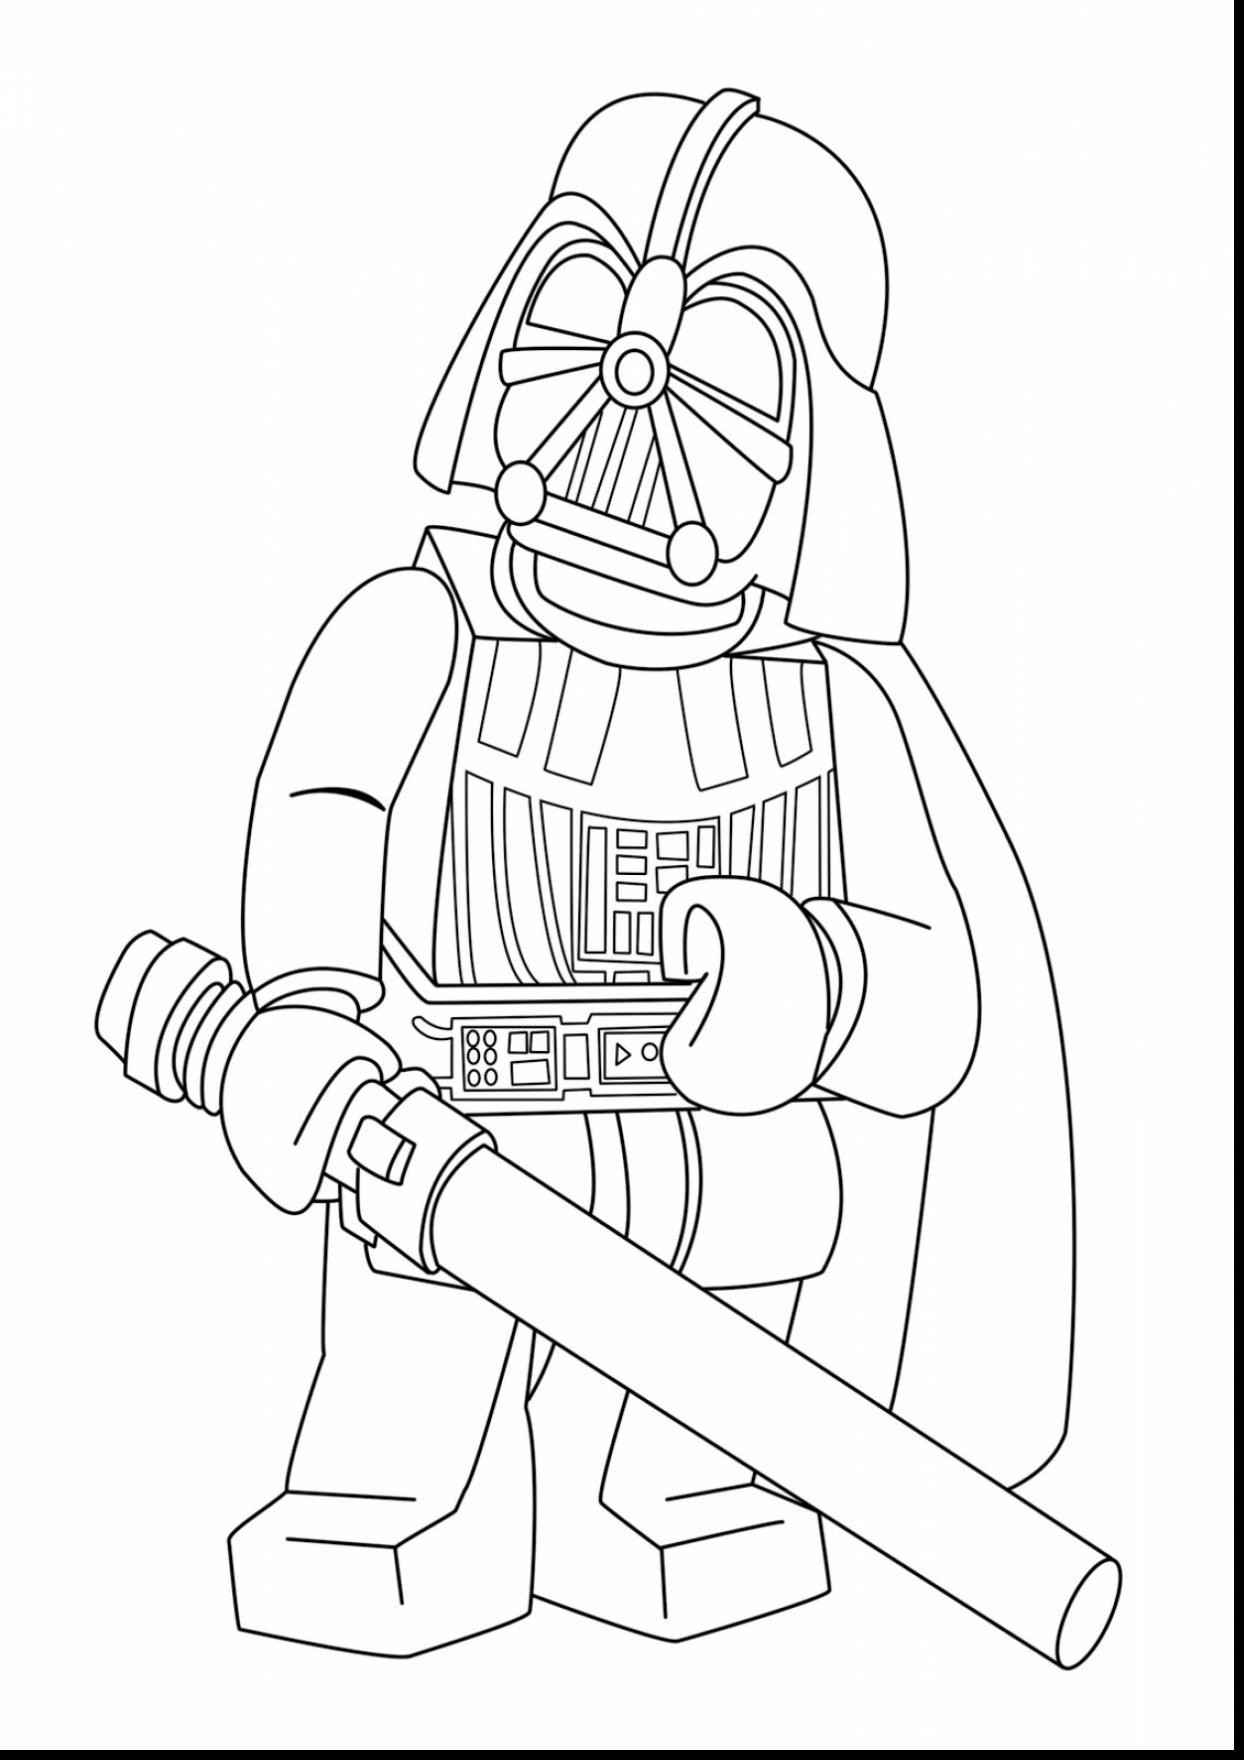 lego star wars 3 coloring pages star wars printable coloring pages lego omalovánky coloring wars star pages 3 lego